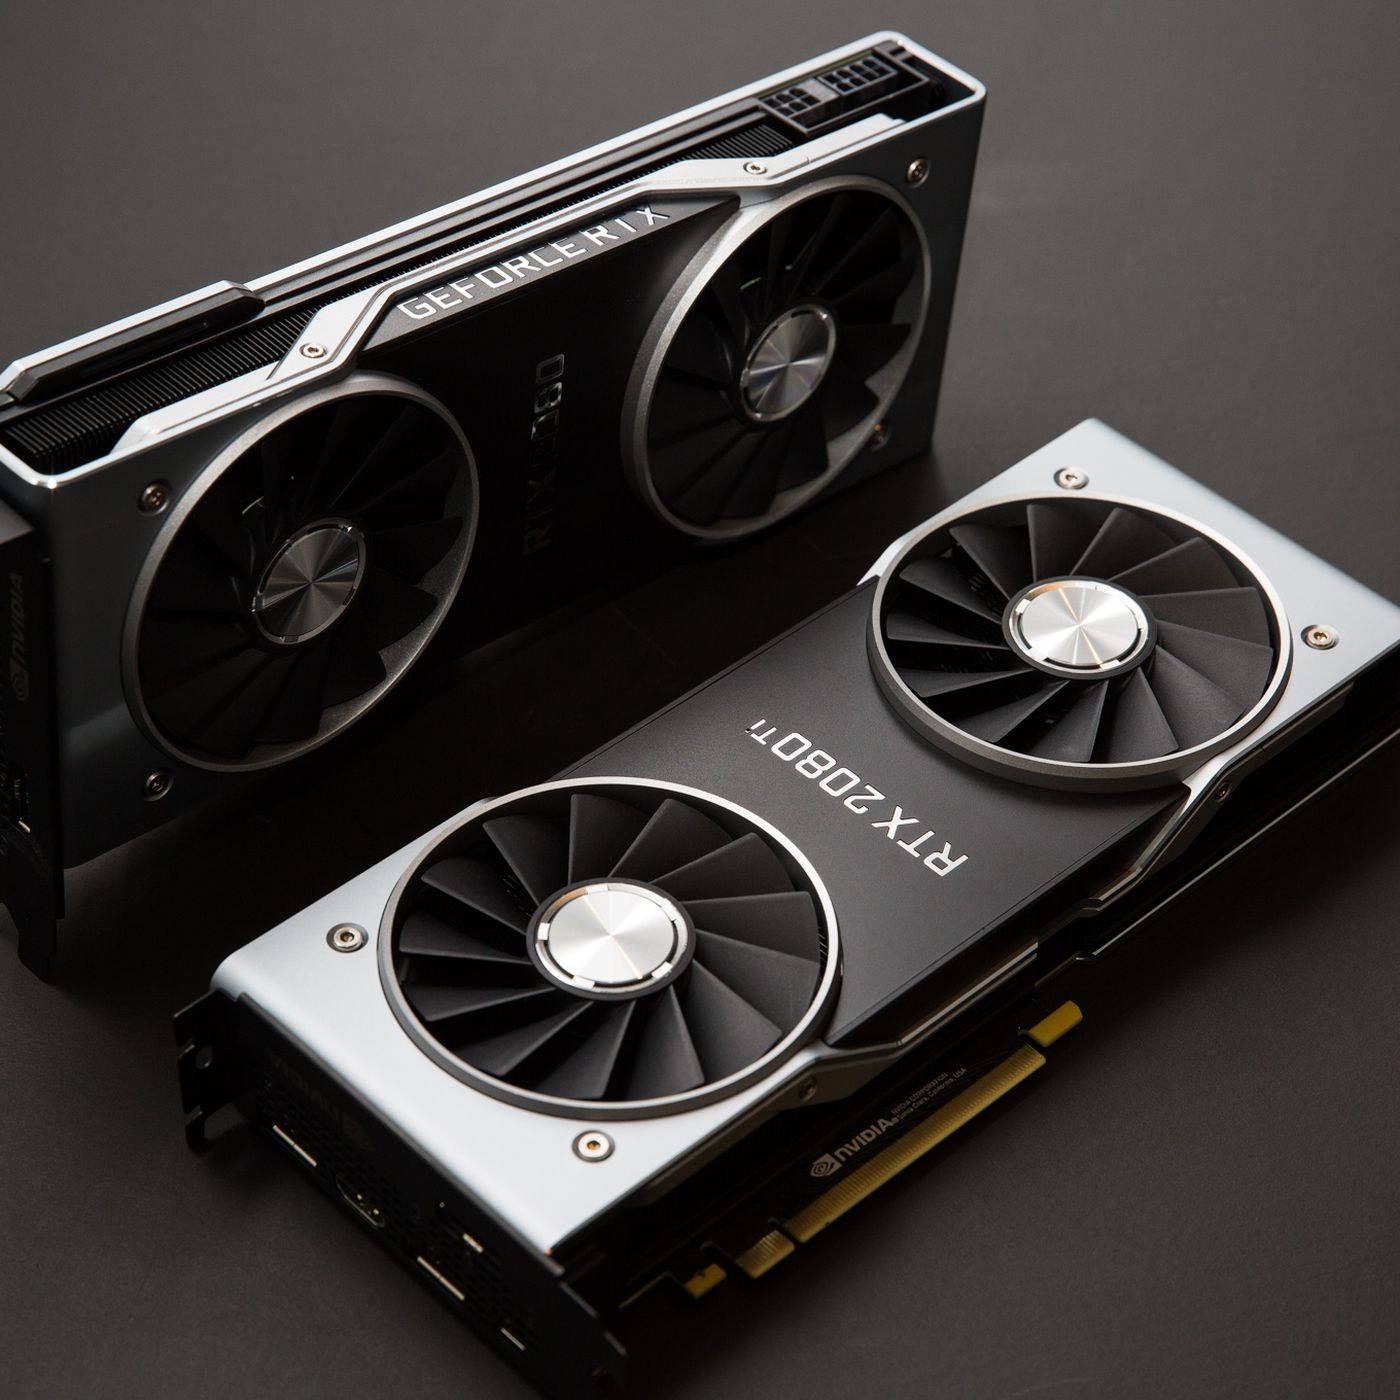 Best Cyber Monday Deals For Pc Gaming Amd Intel Nvidia Cpus Gpus Ssds And More The Verge